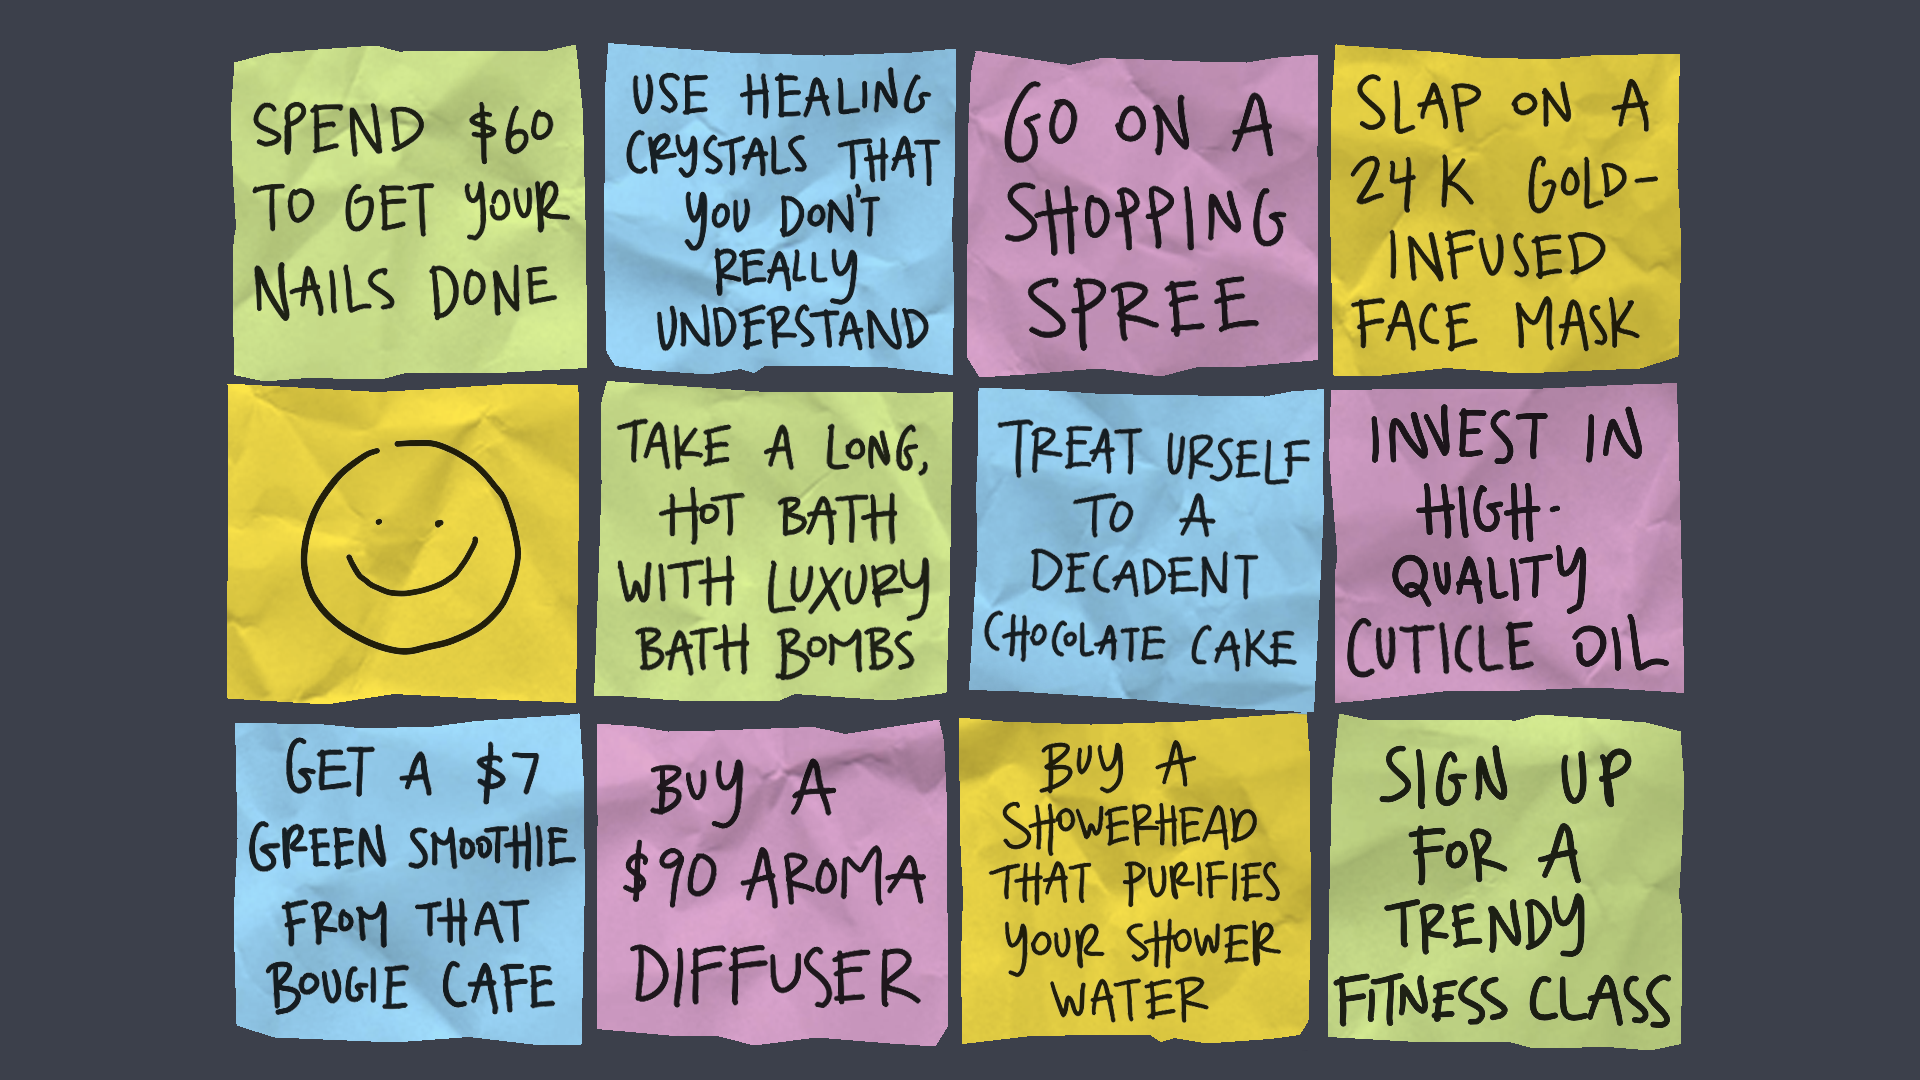 Rethinking Self Care